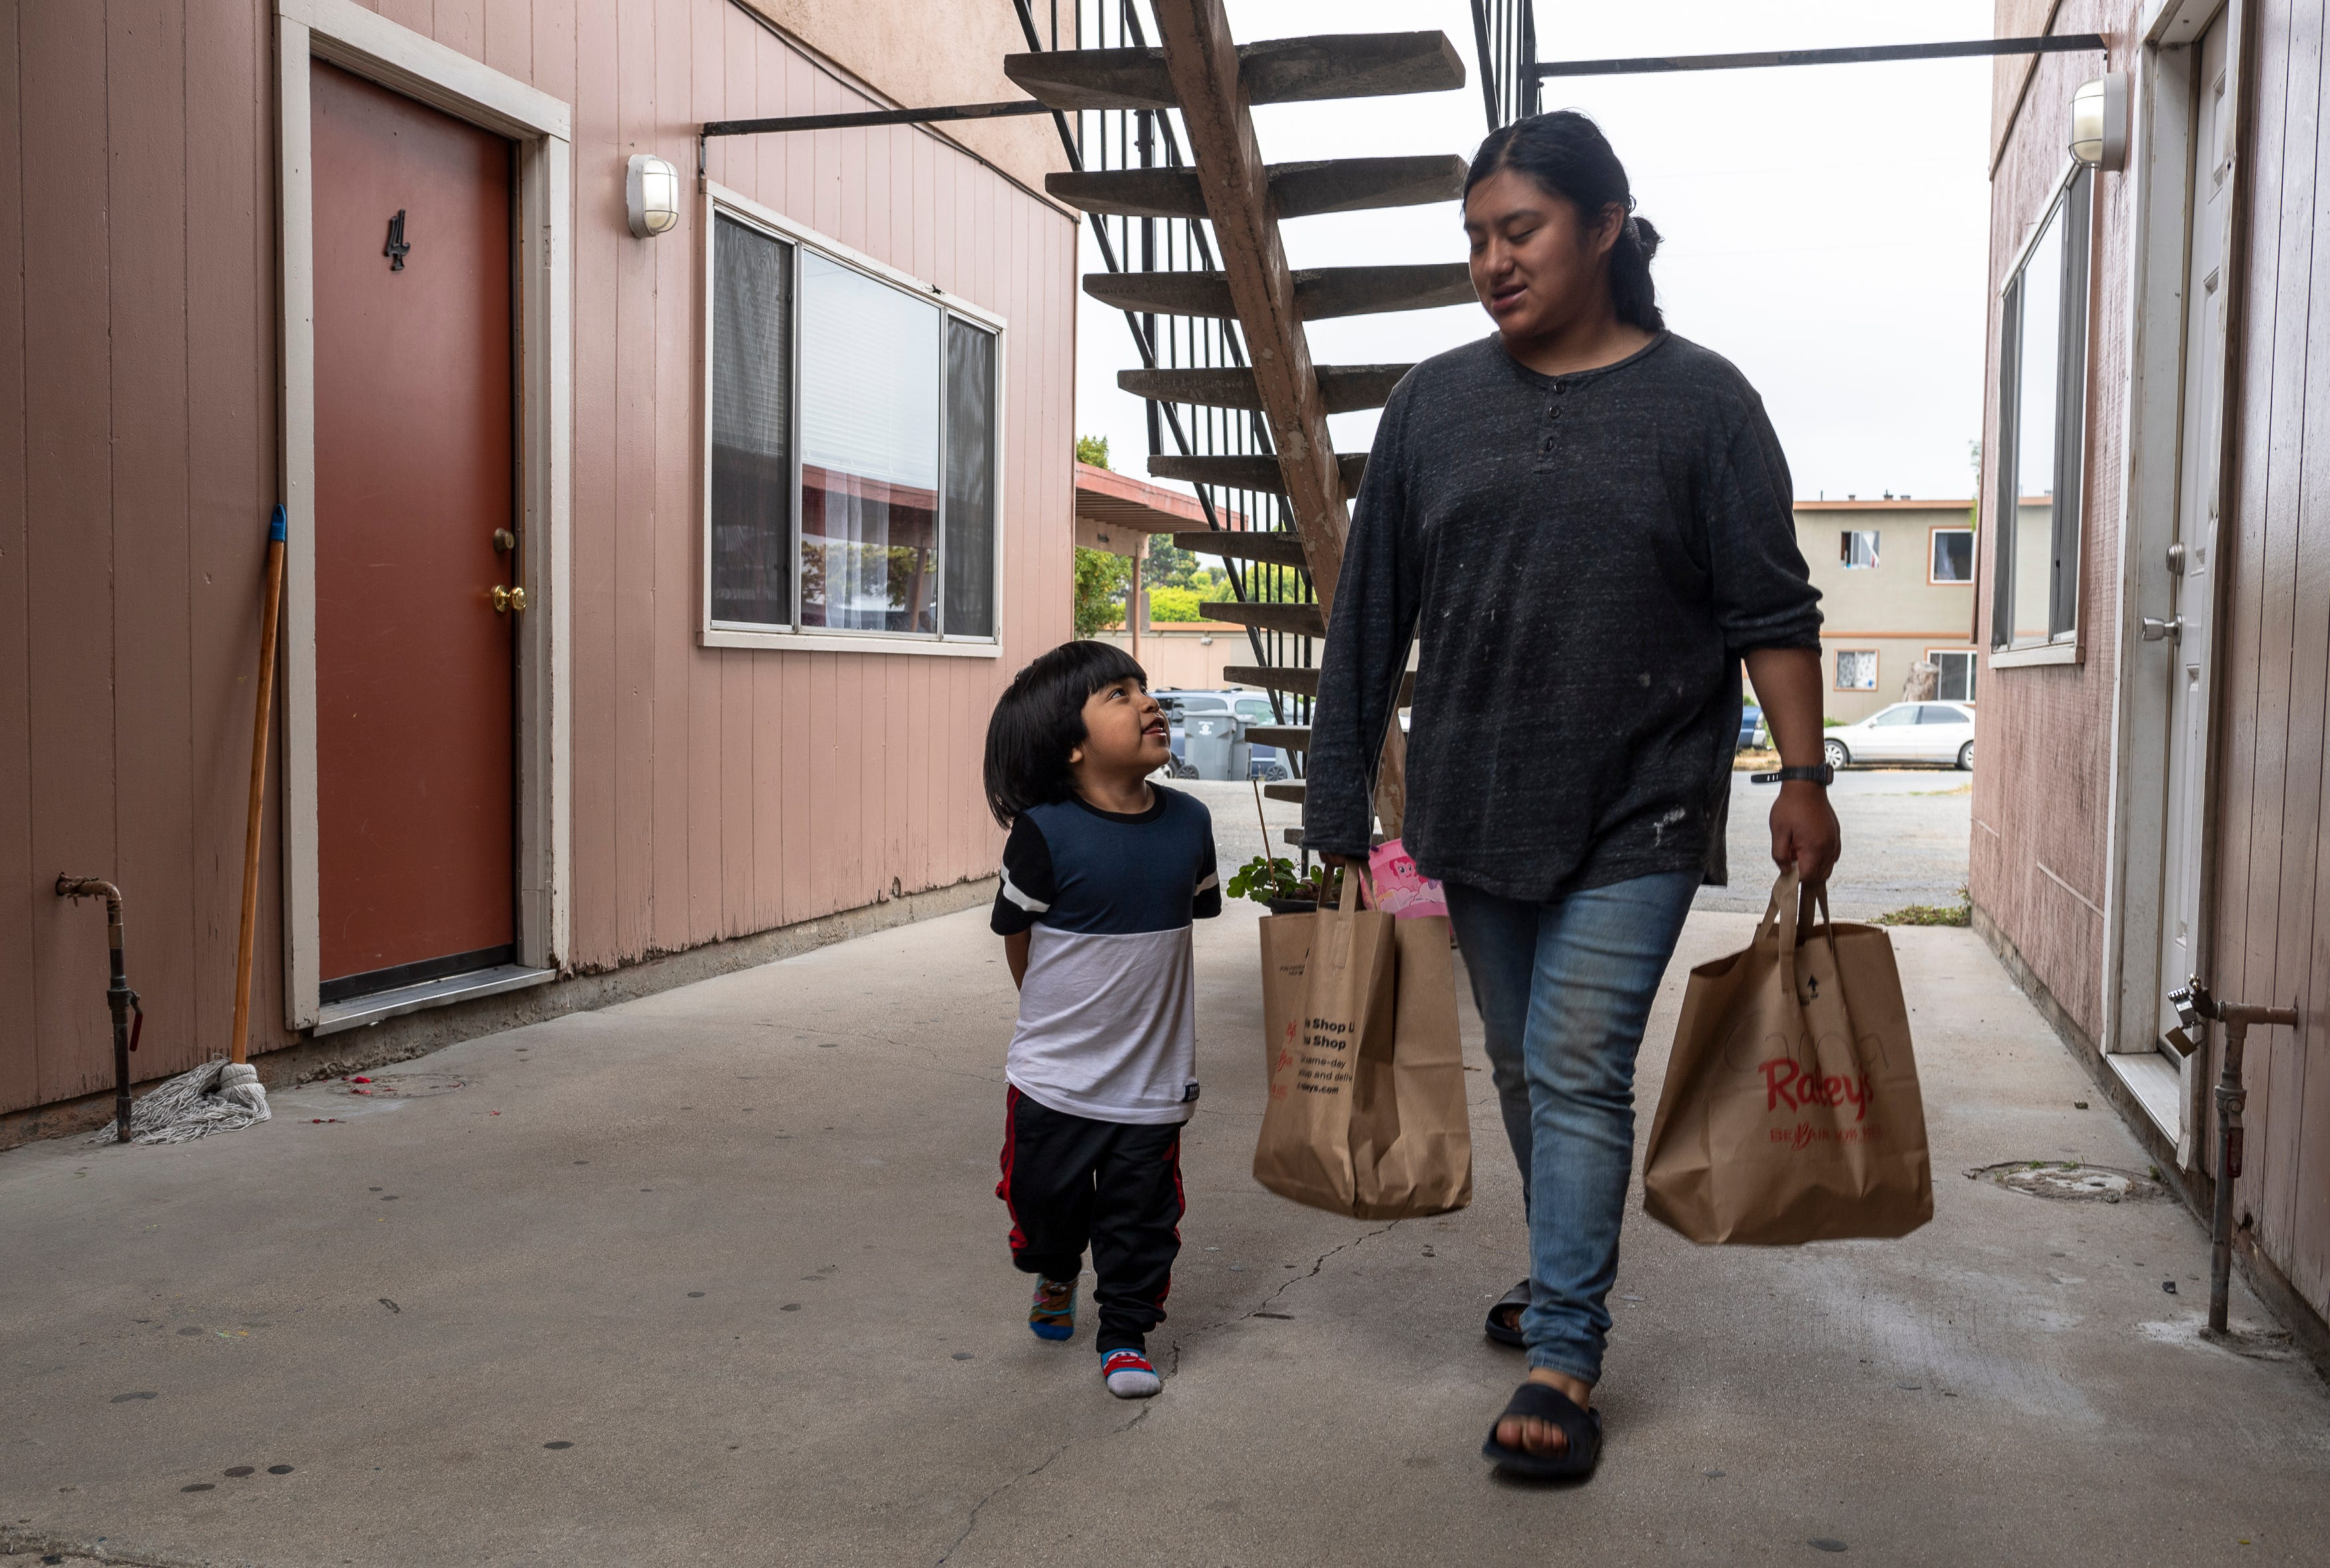 Jesus Salvador, 3, looks up at his sister Resi Salvador, 20, as she carries two bags full of groceries that were donated by a Salinas resident who read her family's story in the Californian in Salinas, Calif., on Saturday, July 18, 2020.